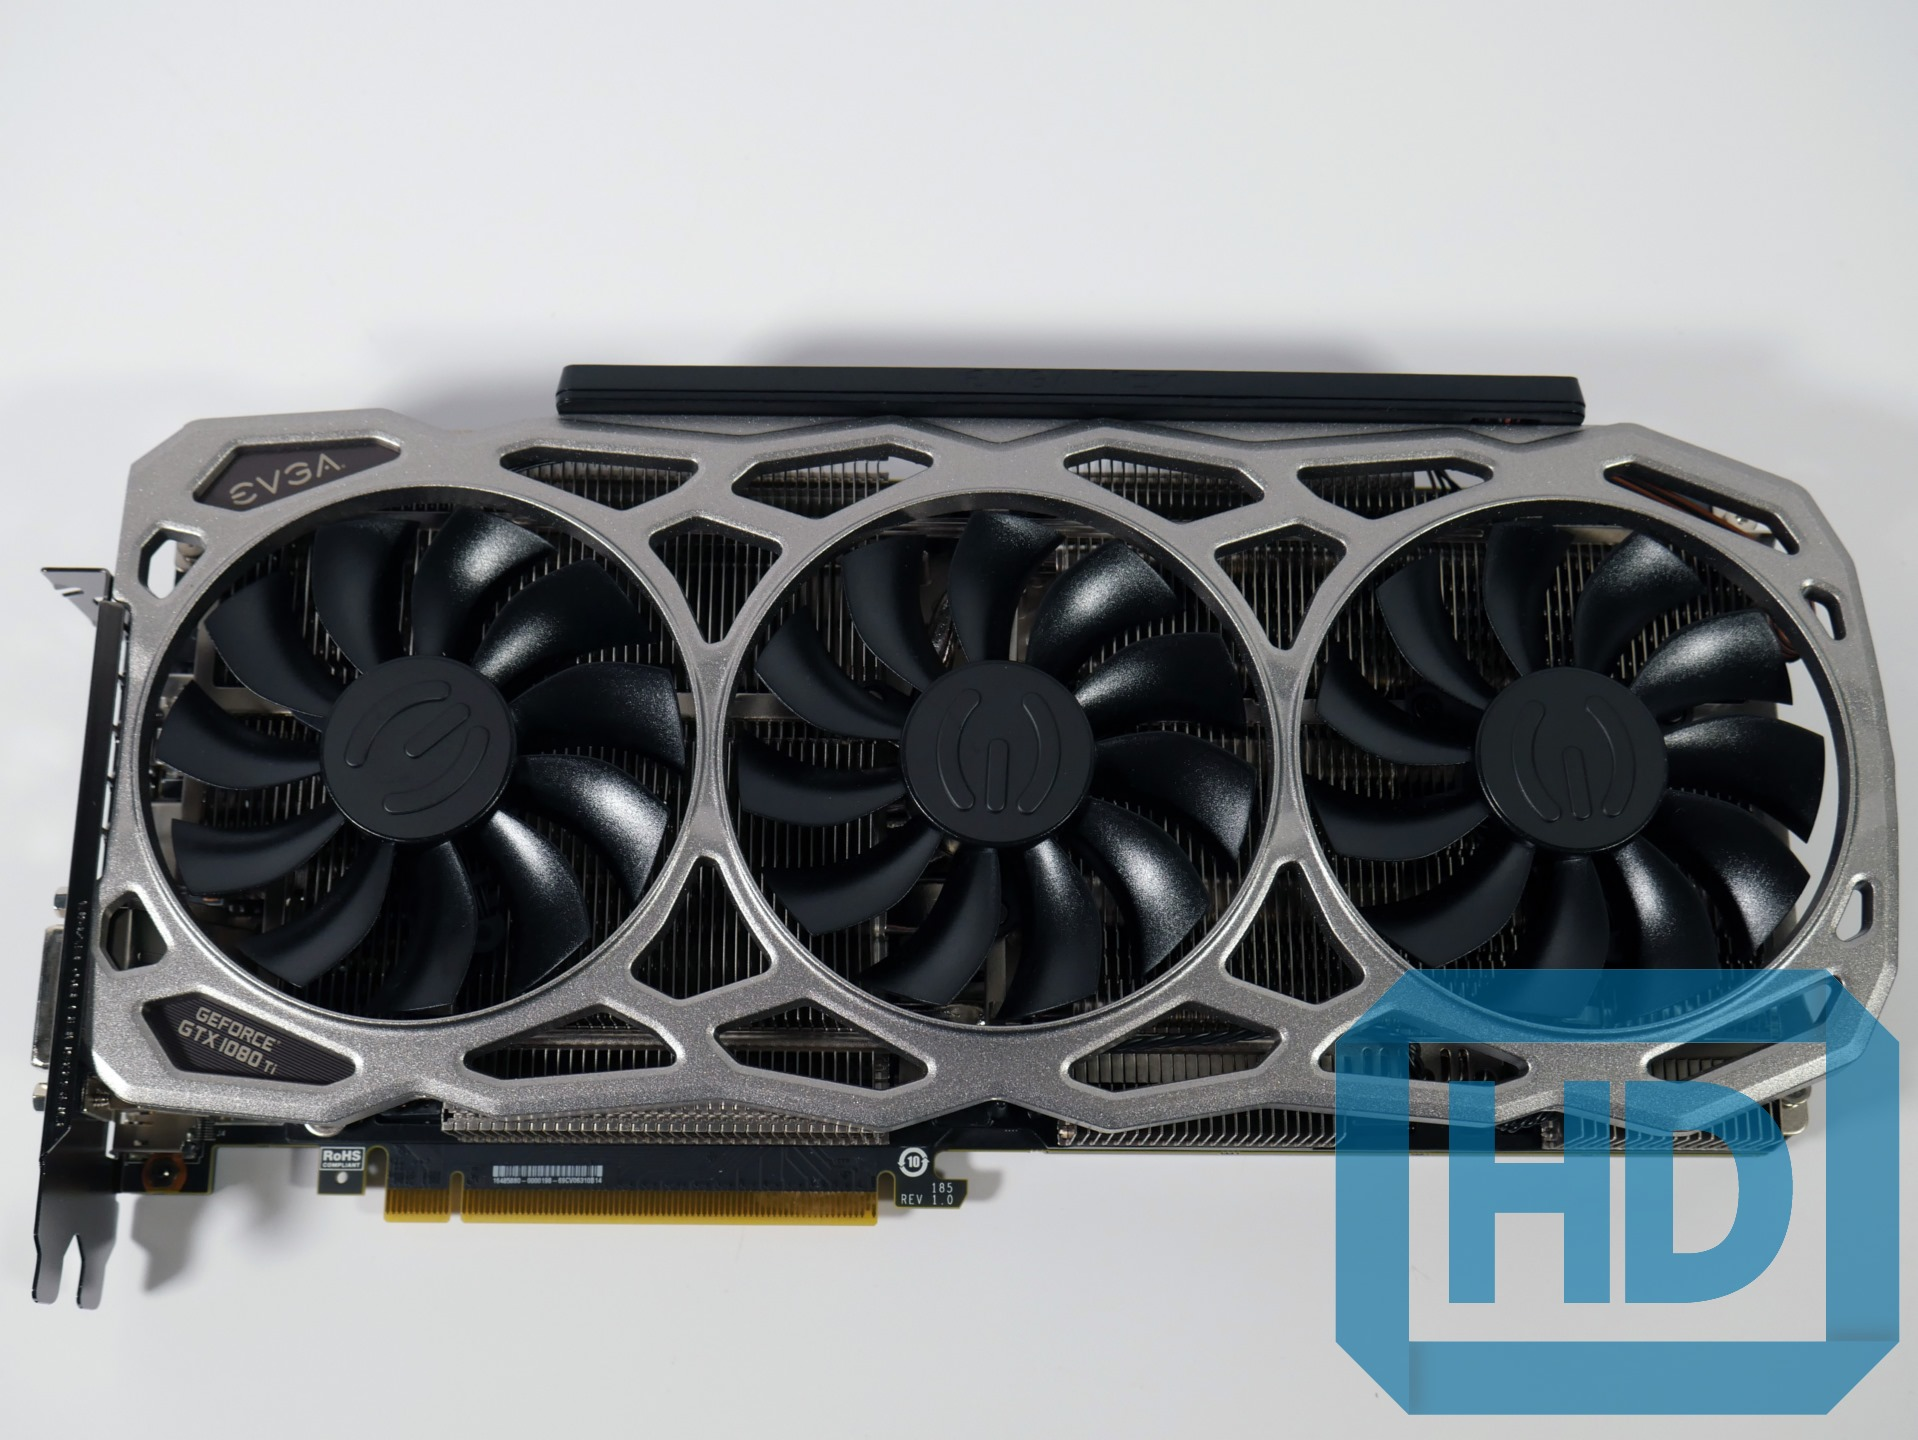 Review EVGA GeForce GTX 1080Ti FTW3 11GB